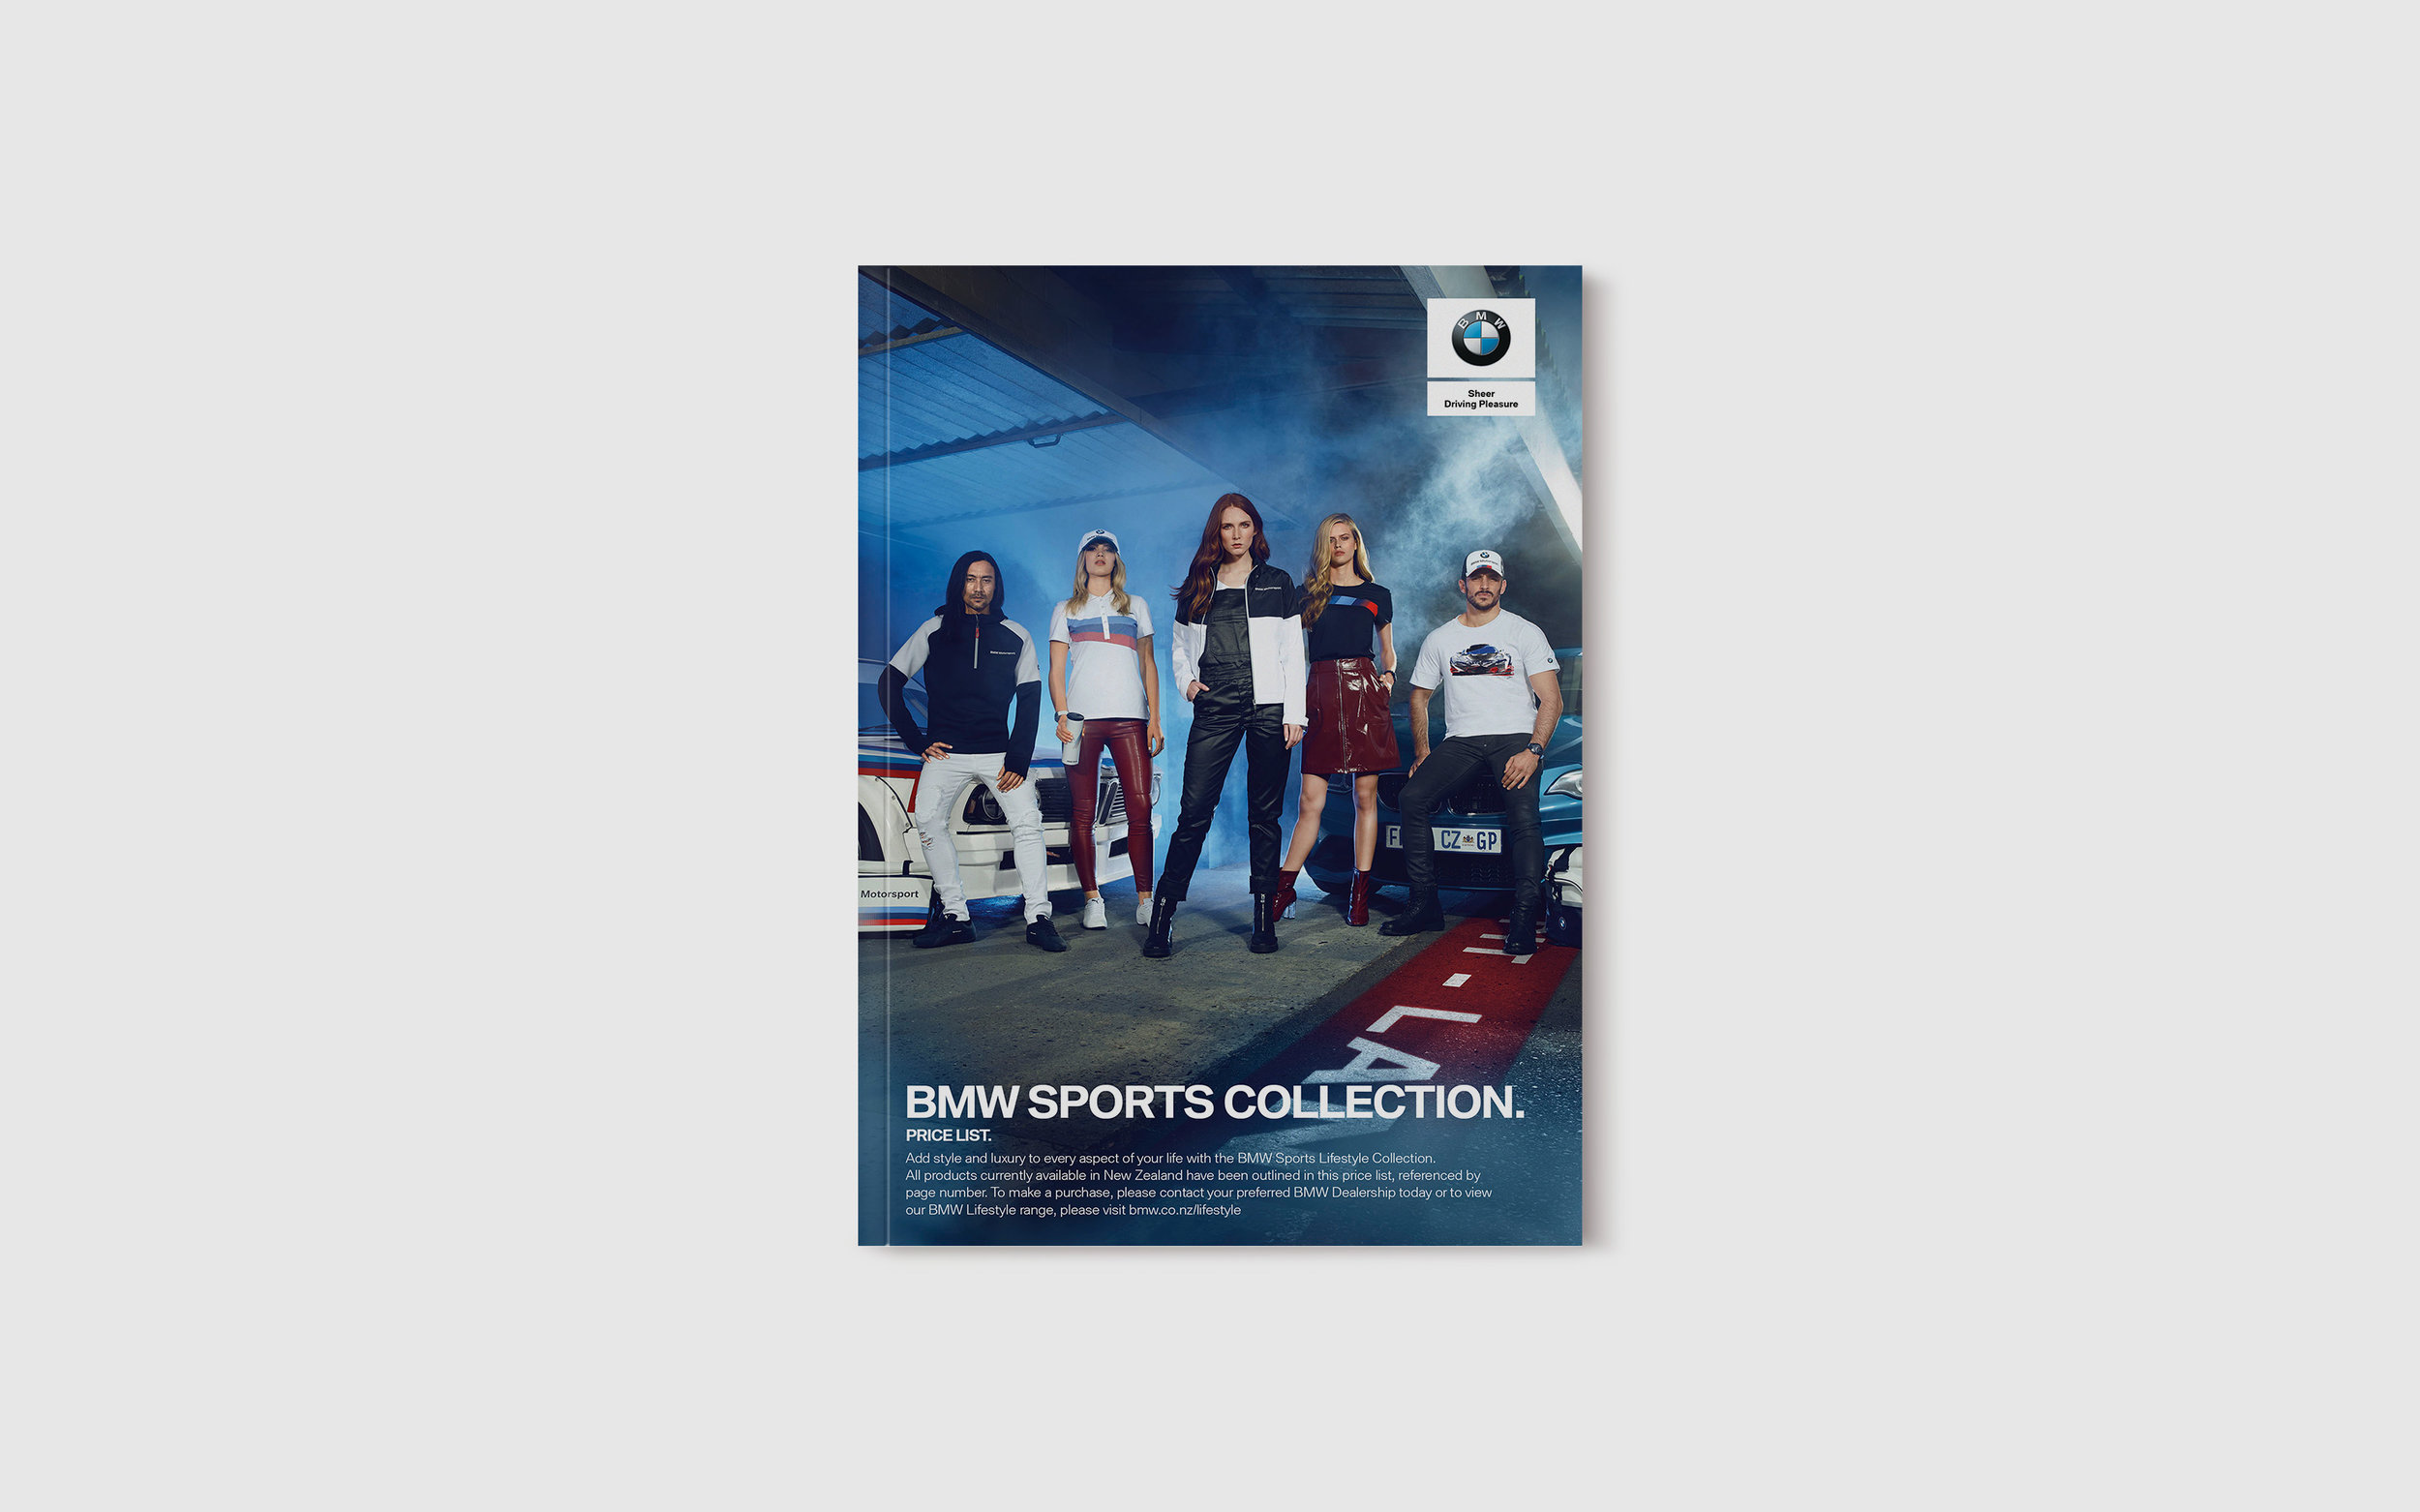 BMW-Price-List-Mockup-cover.jpg